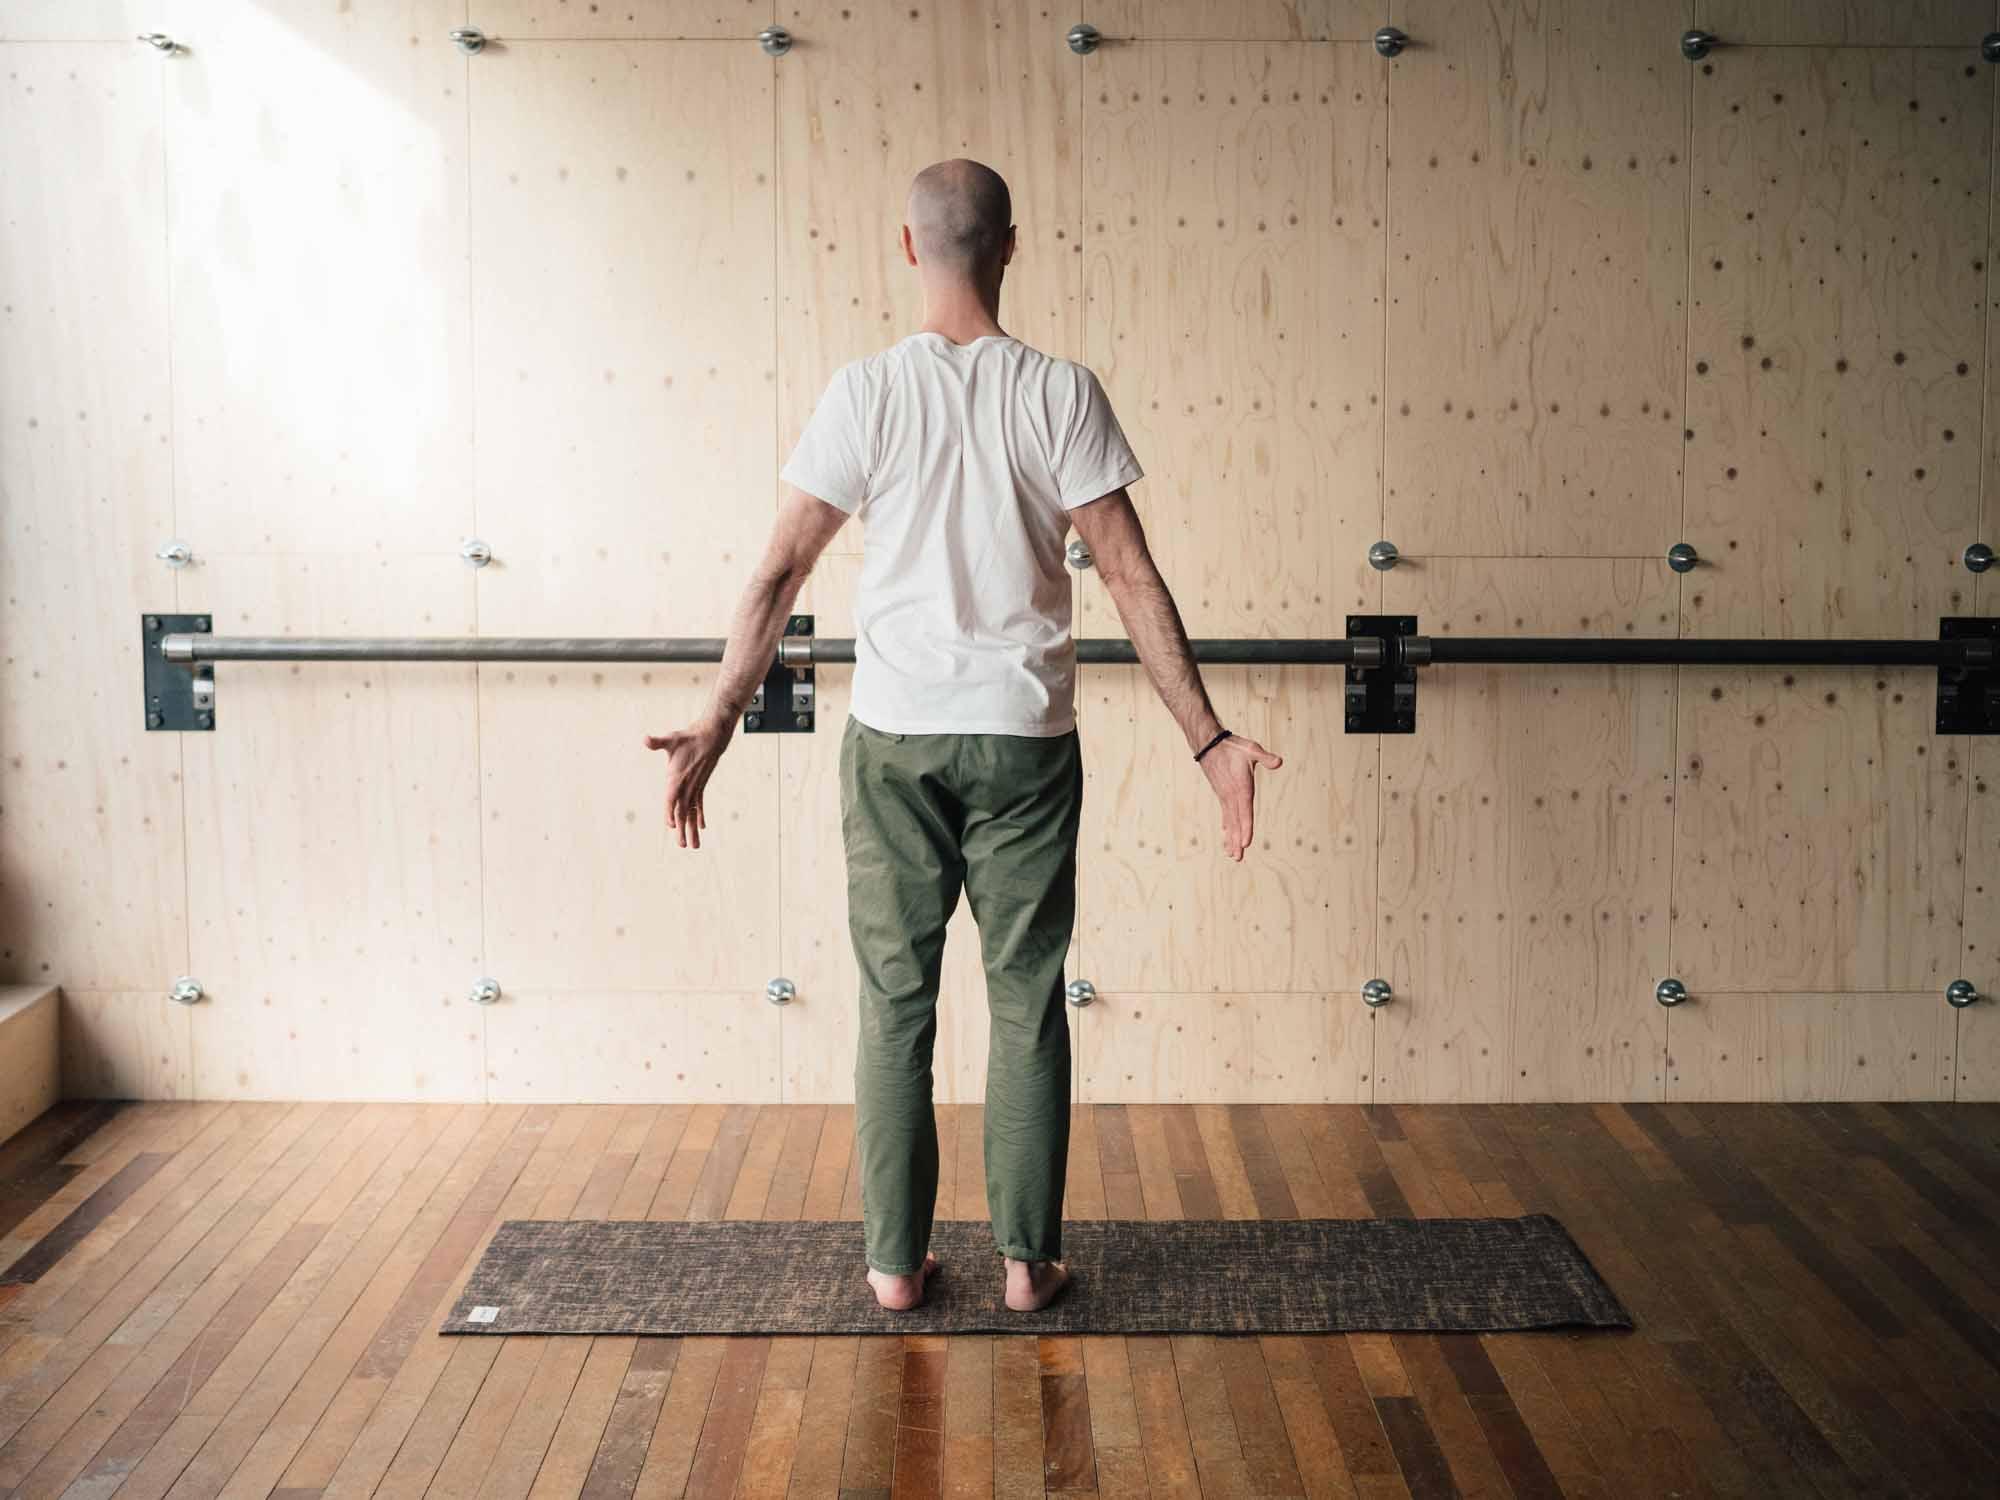 Man squeezing shoulder blades together in a yoga studio